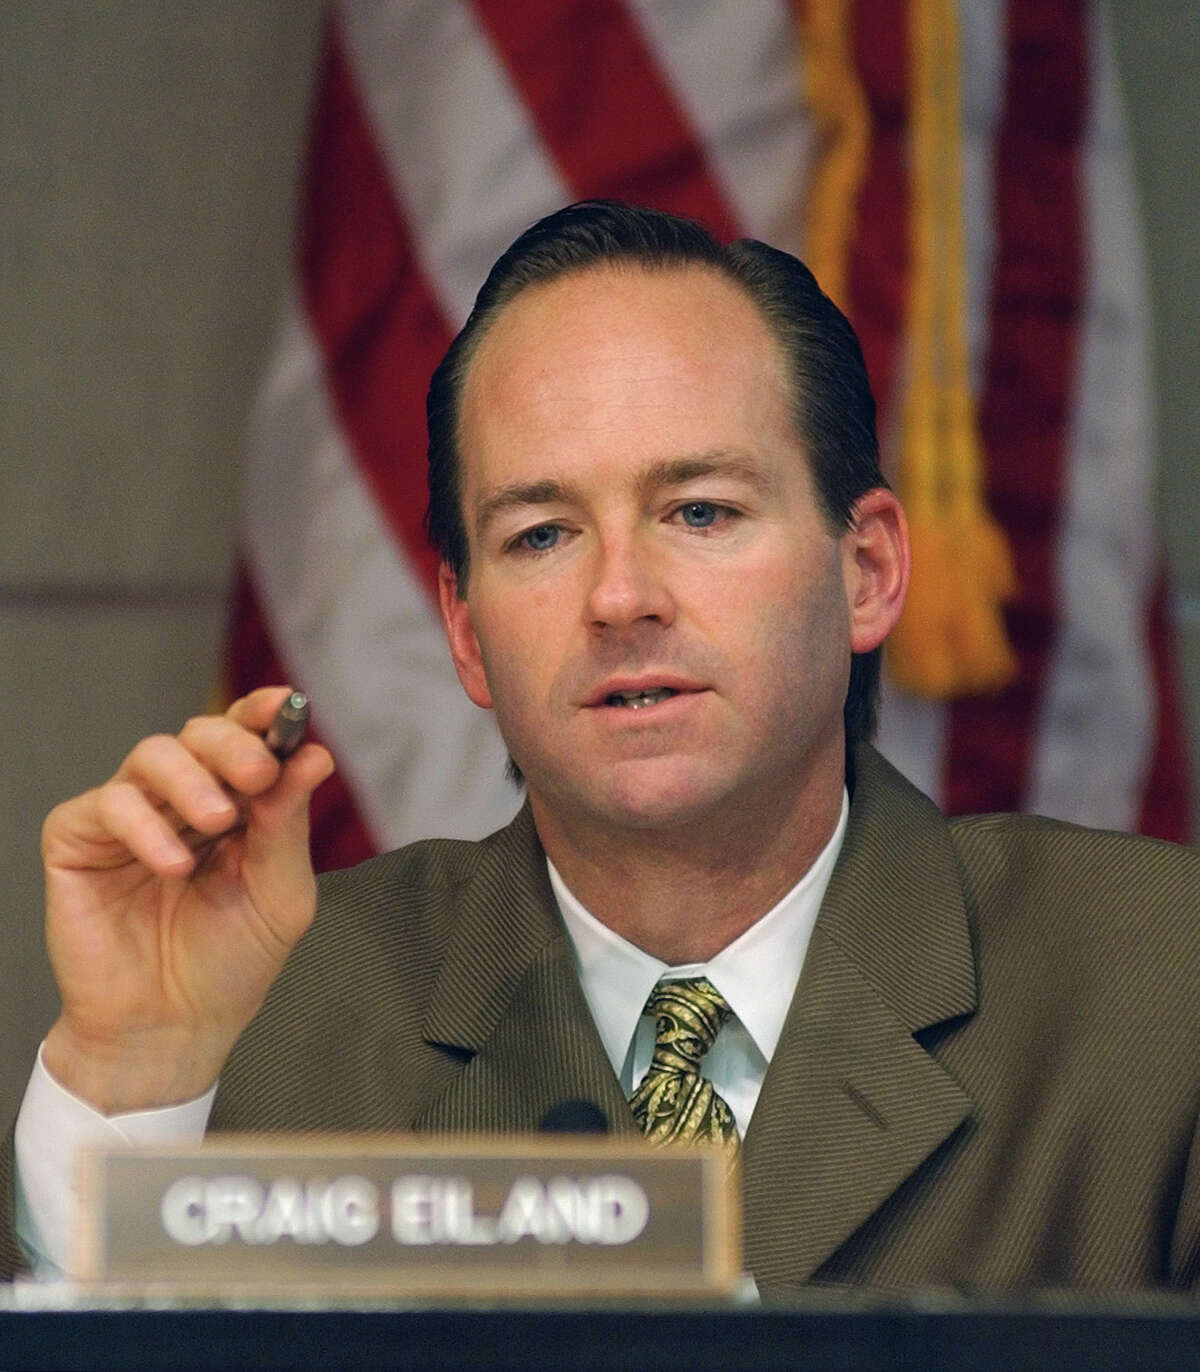 Rep. Craig Eiland, D-Galveston, served as vice chair of the House committee overseeing TWIA, despite the fact that he also handled claims against the state agency in his law practice.